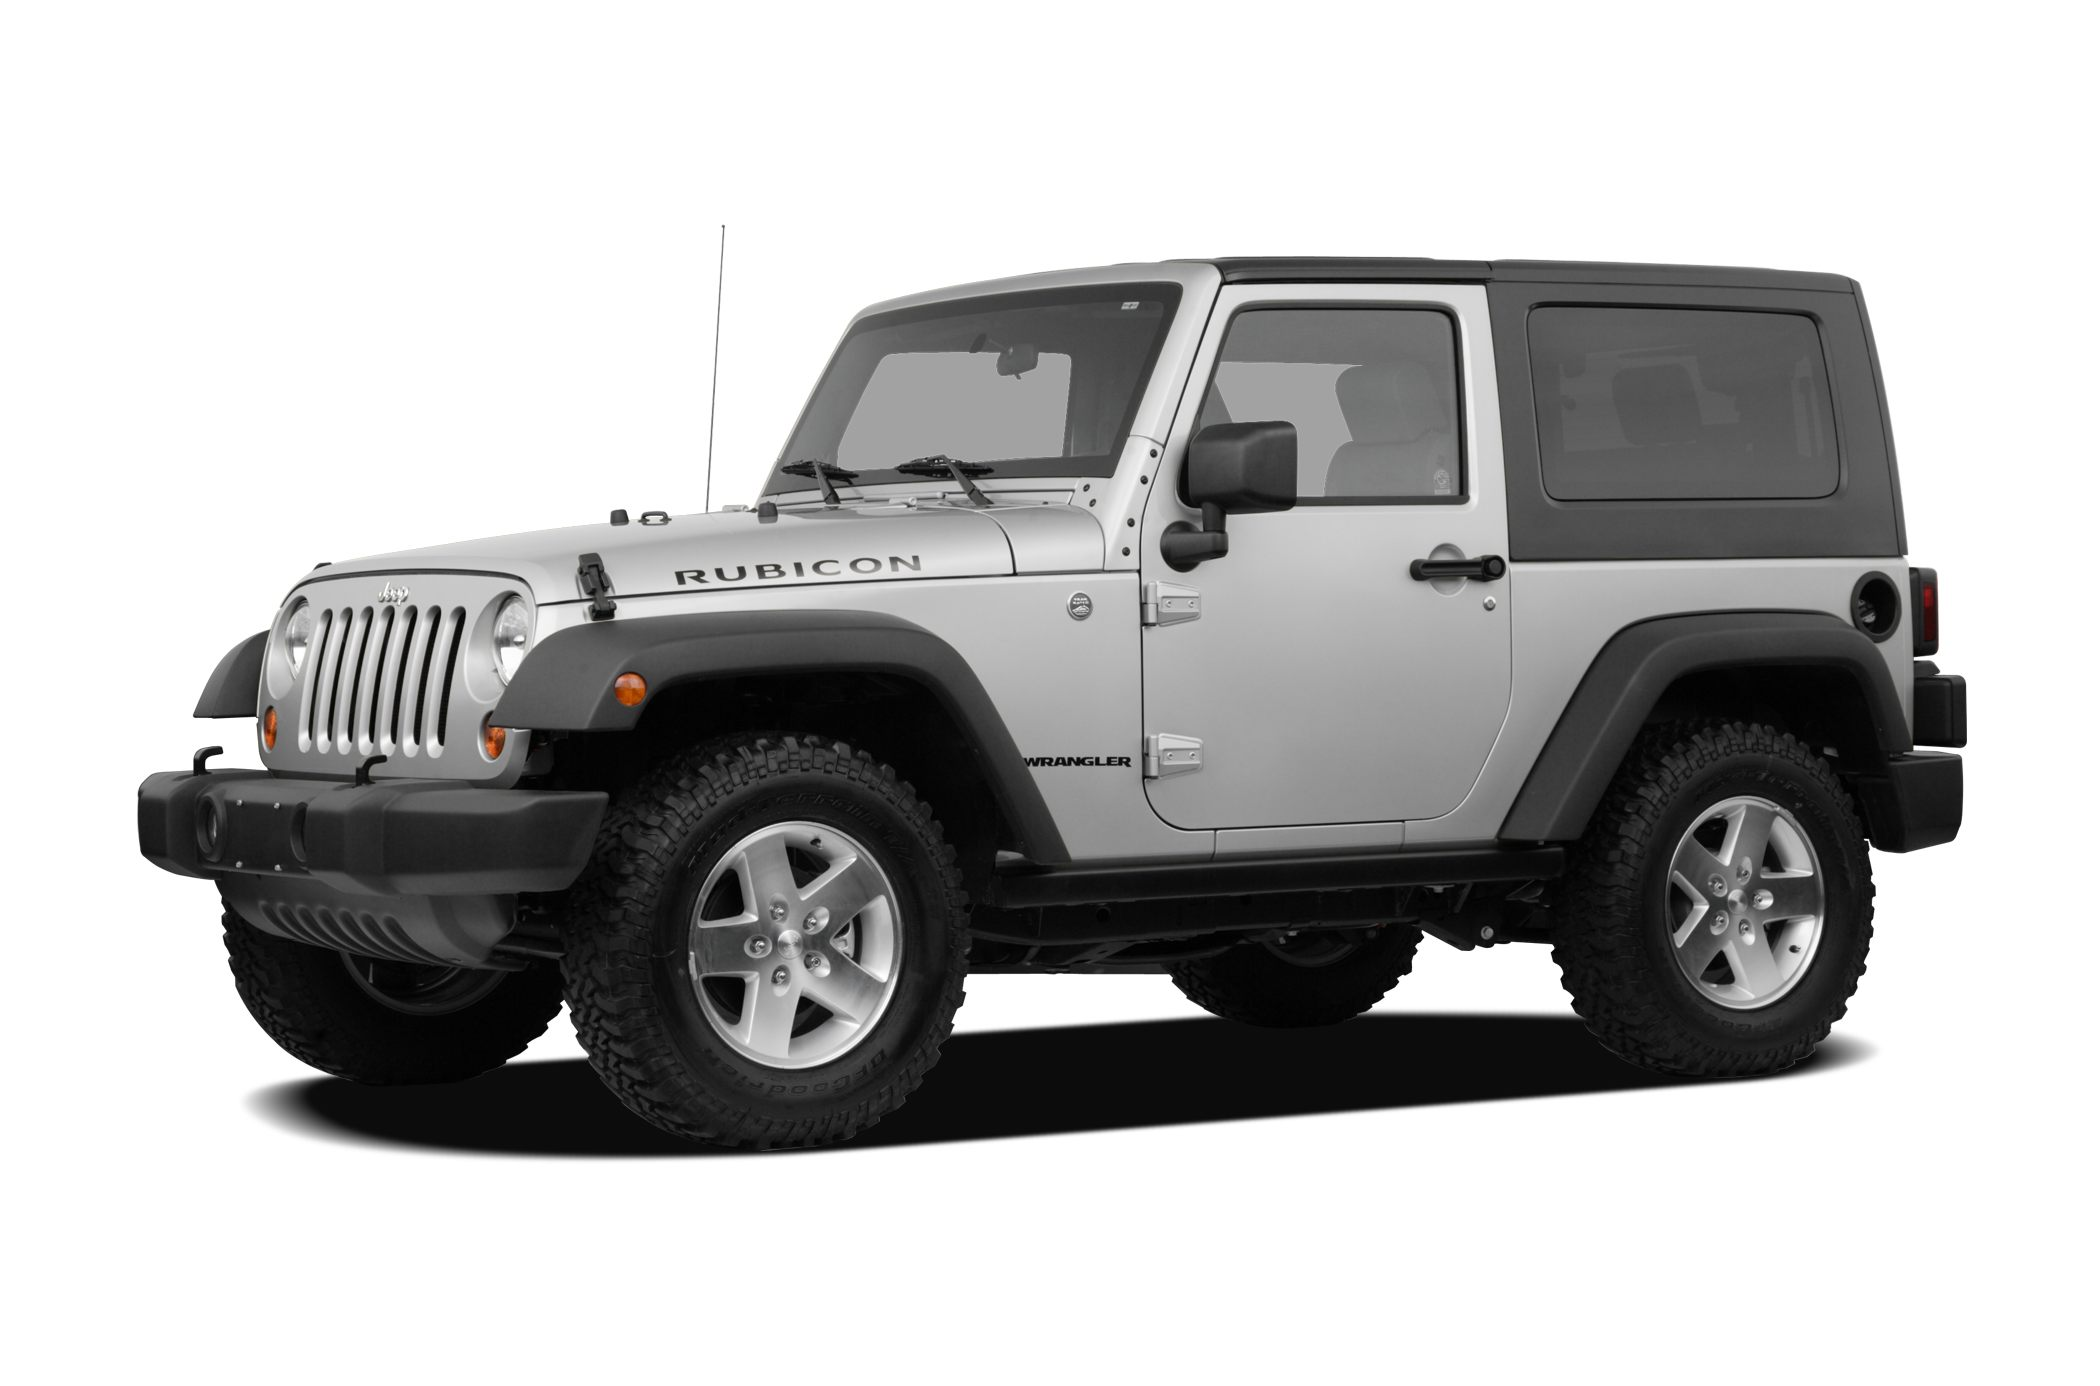 2007 Jeep Wrangler X SUV for sale in Albuquerque for $22,995 with 65,544 miles.